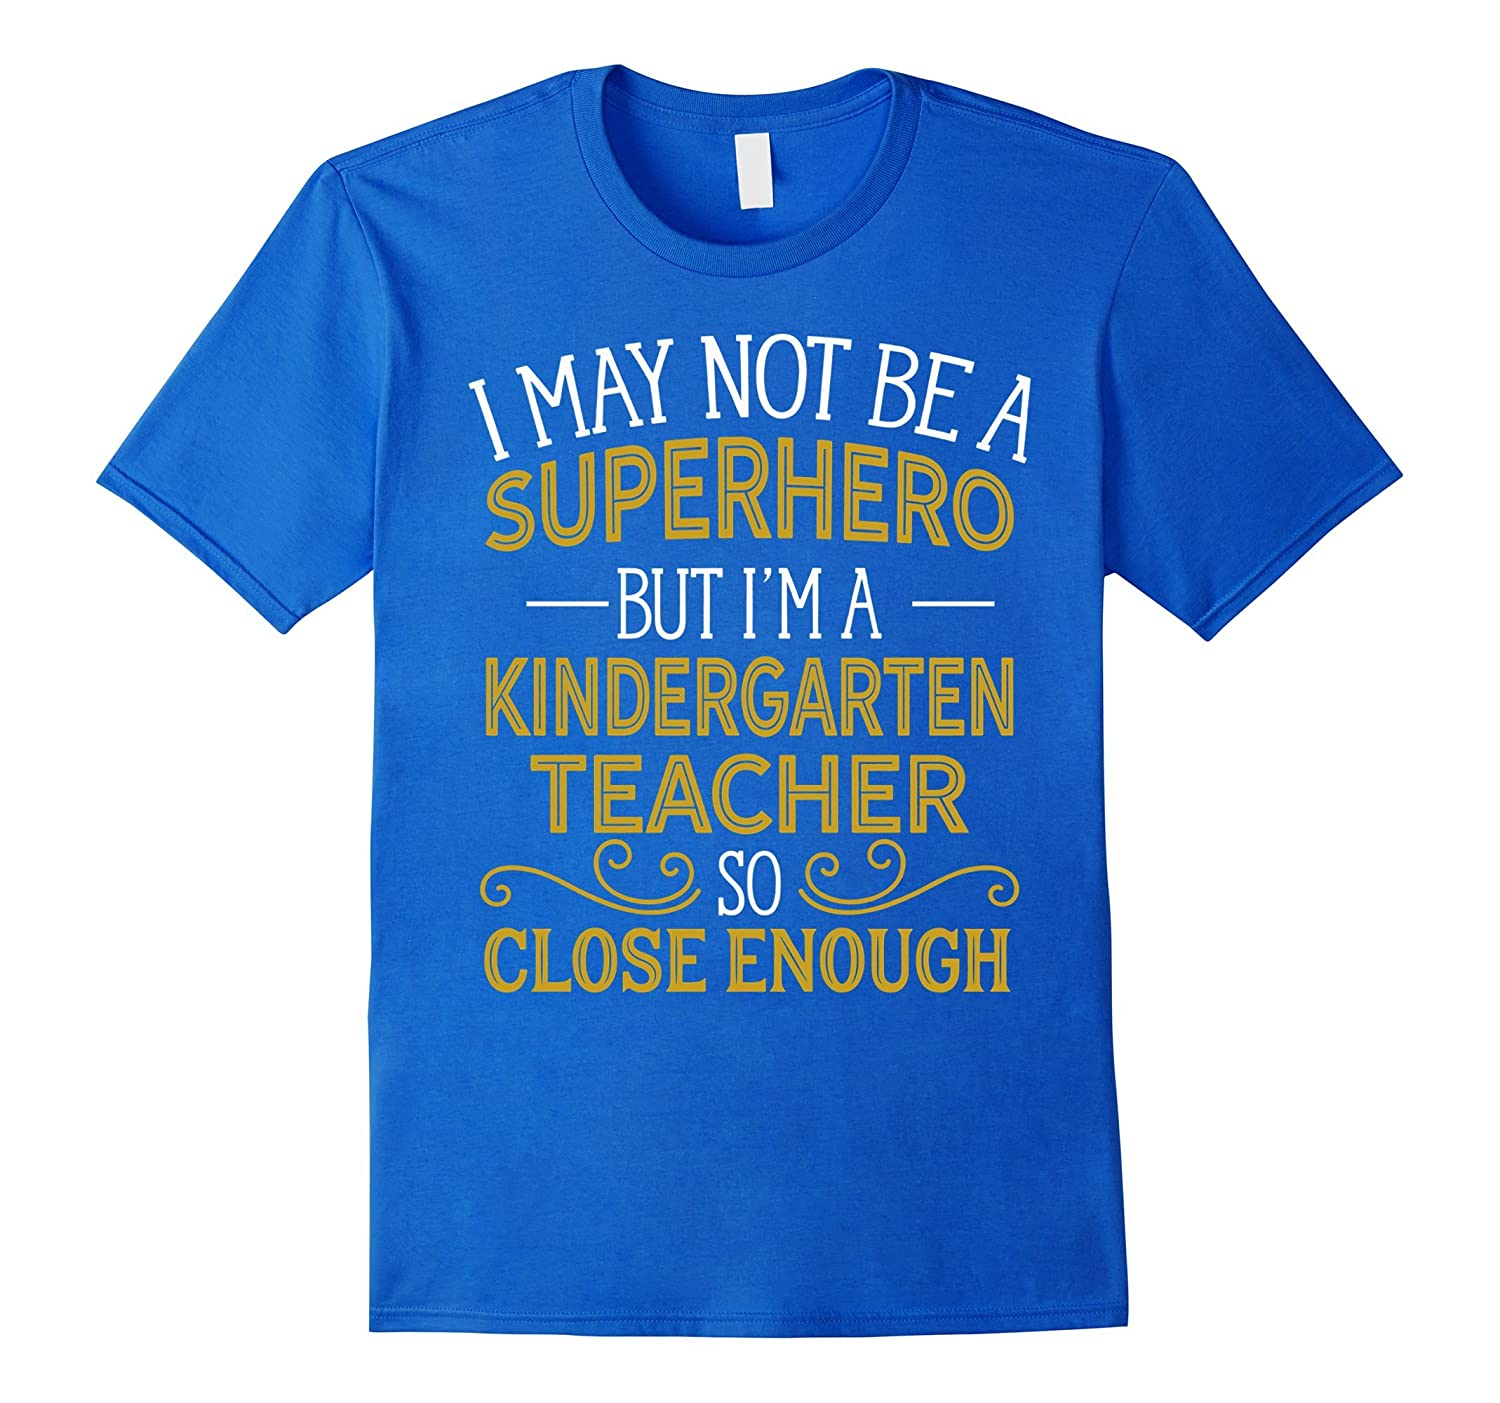 Not Superhero But Kindergarten Teacher Funny Gift T-Shirt-RT